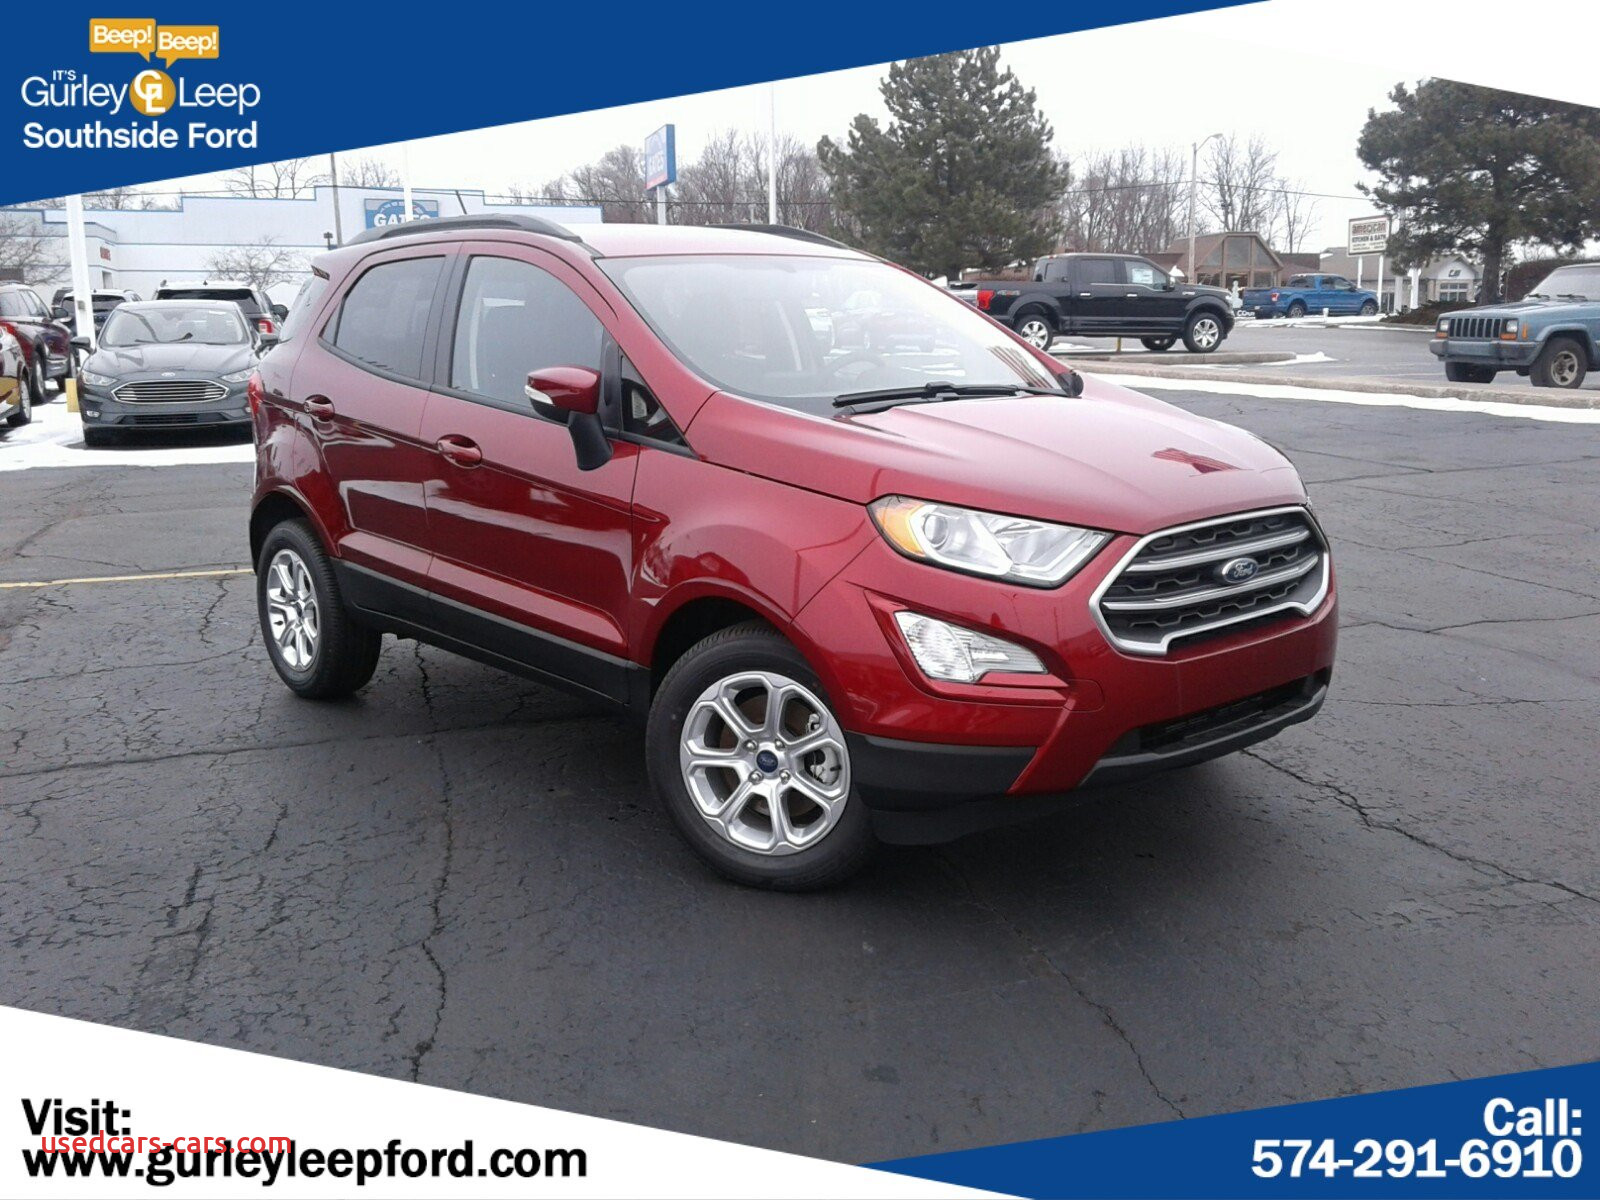 Ford 2020 New Suv Elegant New 2020 ford Ecosport Se with Navigation